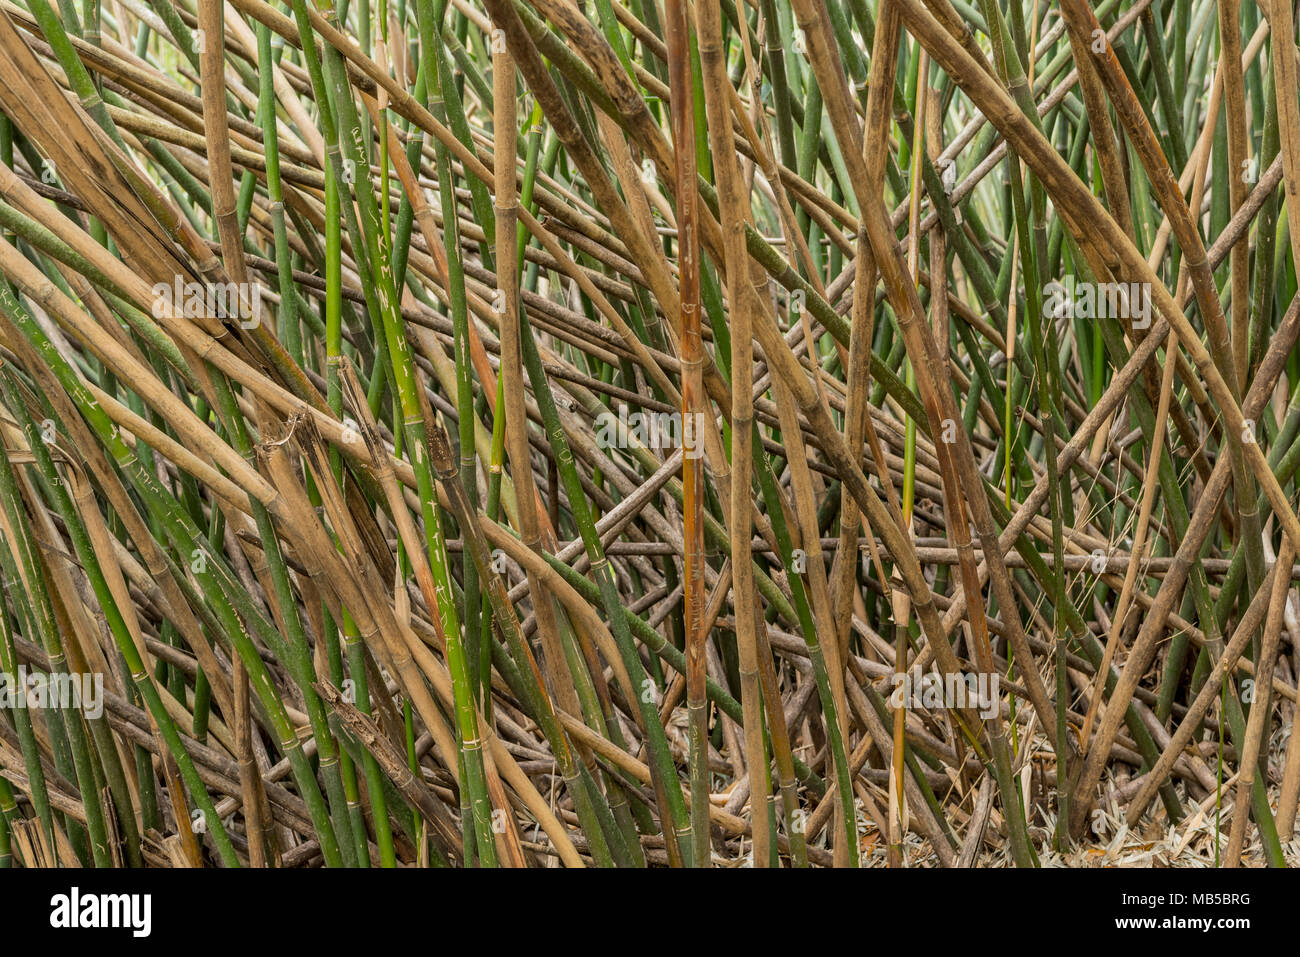 Bamboo Pick Up Sticks growing thick in forest - Stock Image